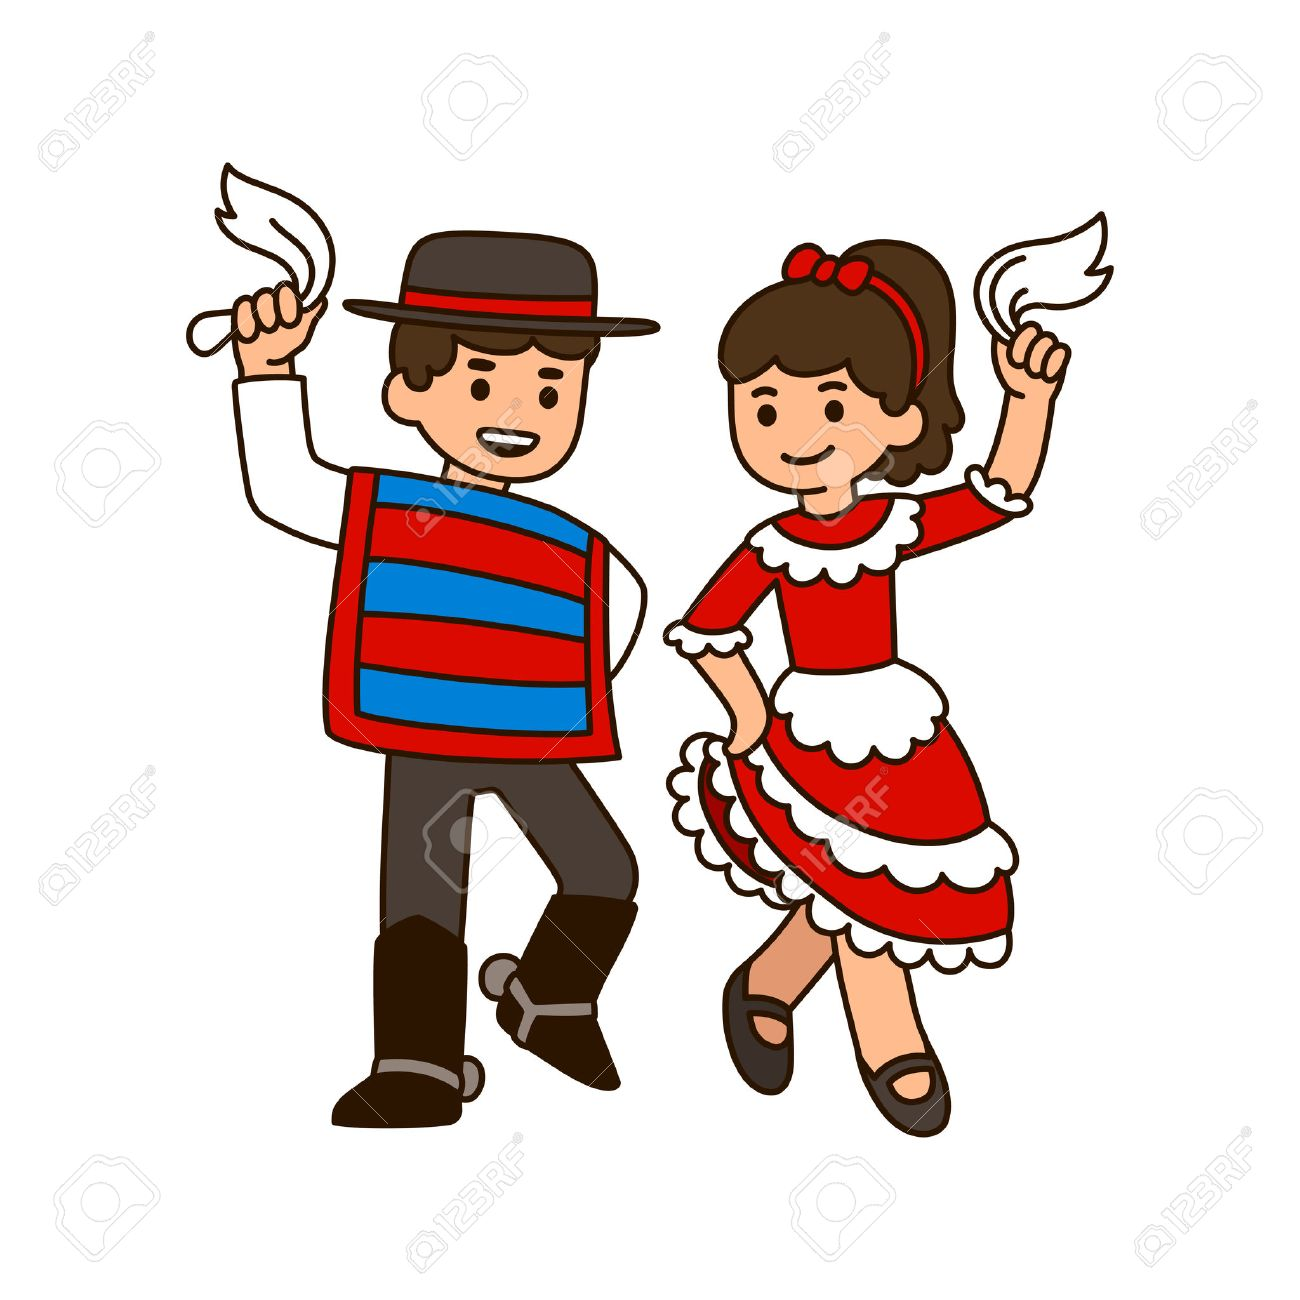 Child Dance Clipart.